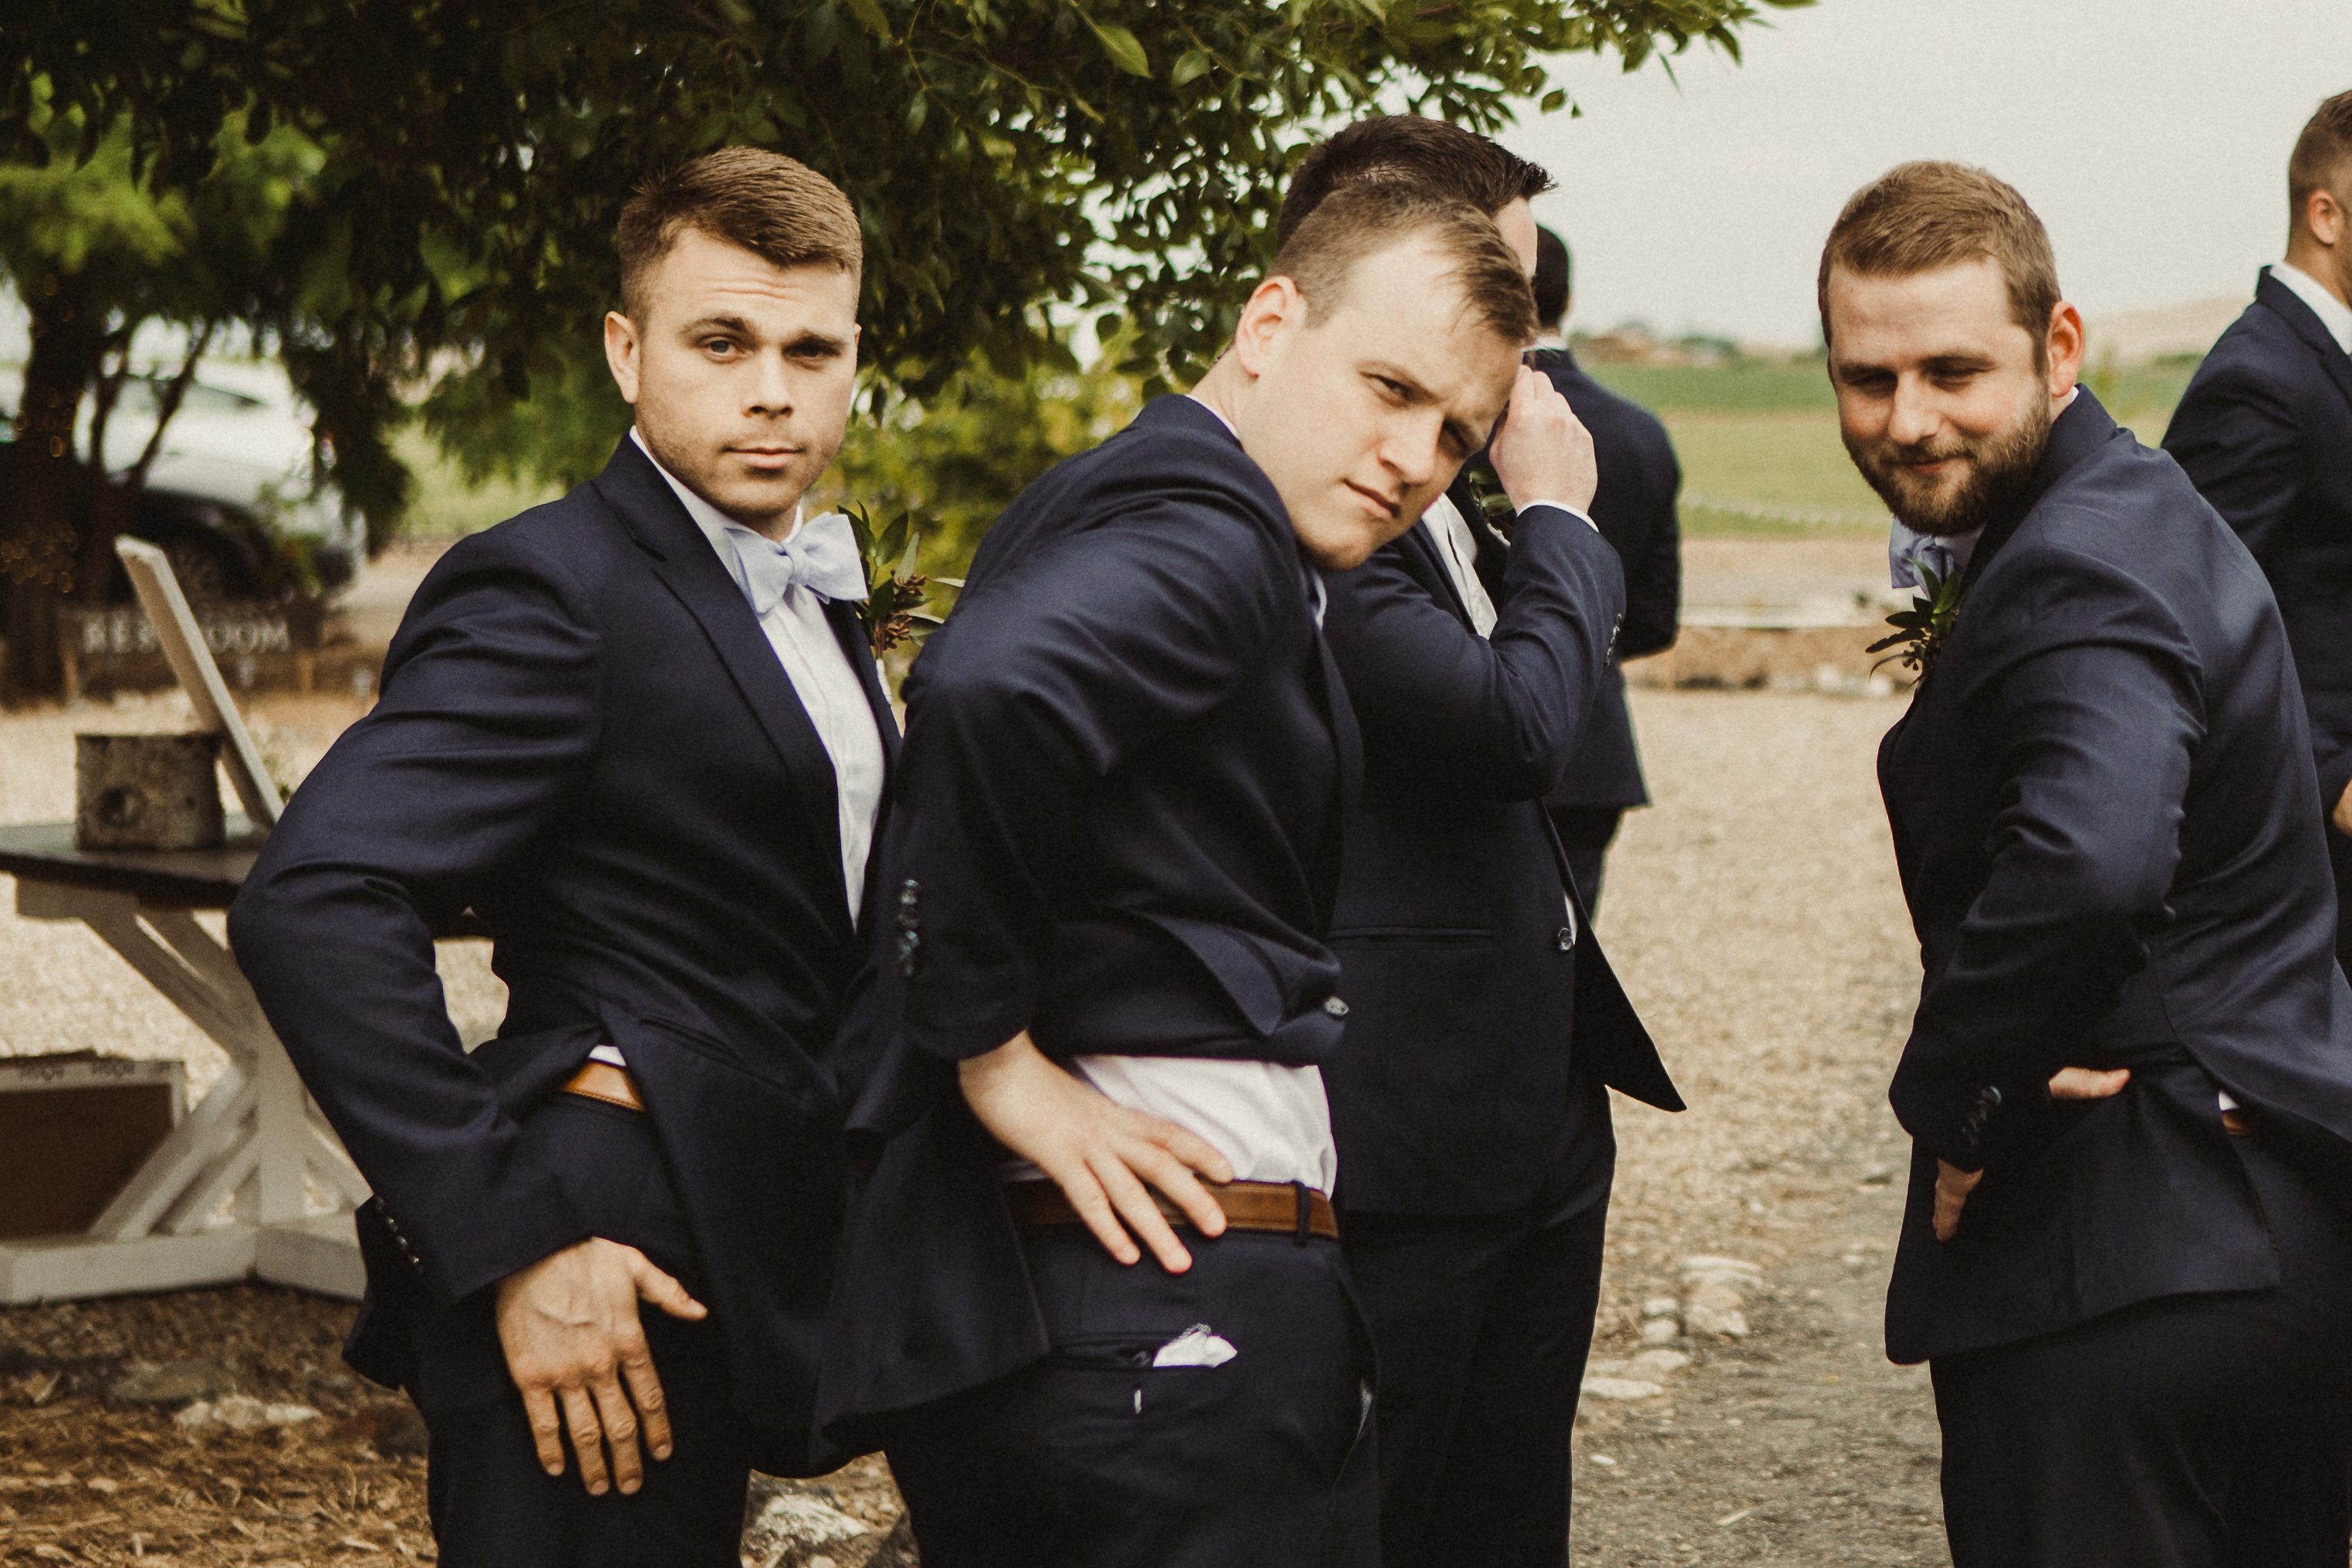 groomsmen pose in suits and act silly before a wedding